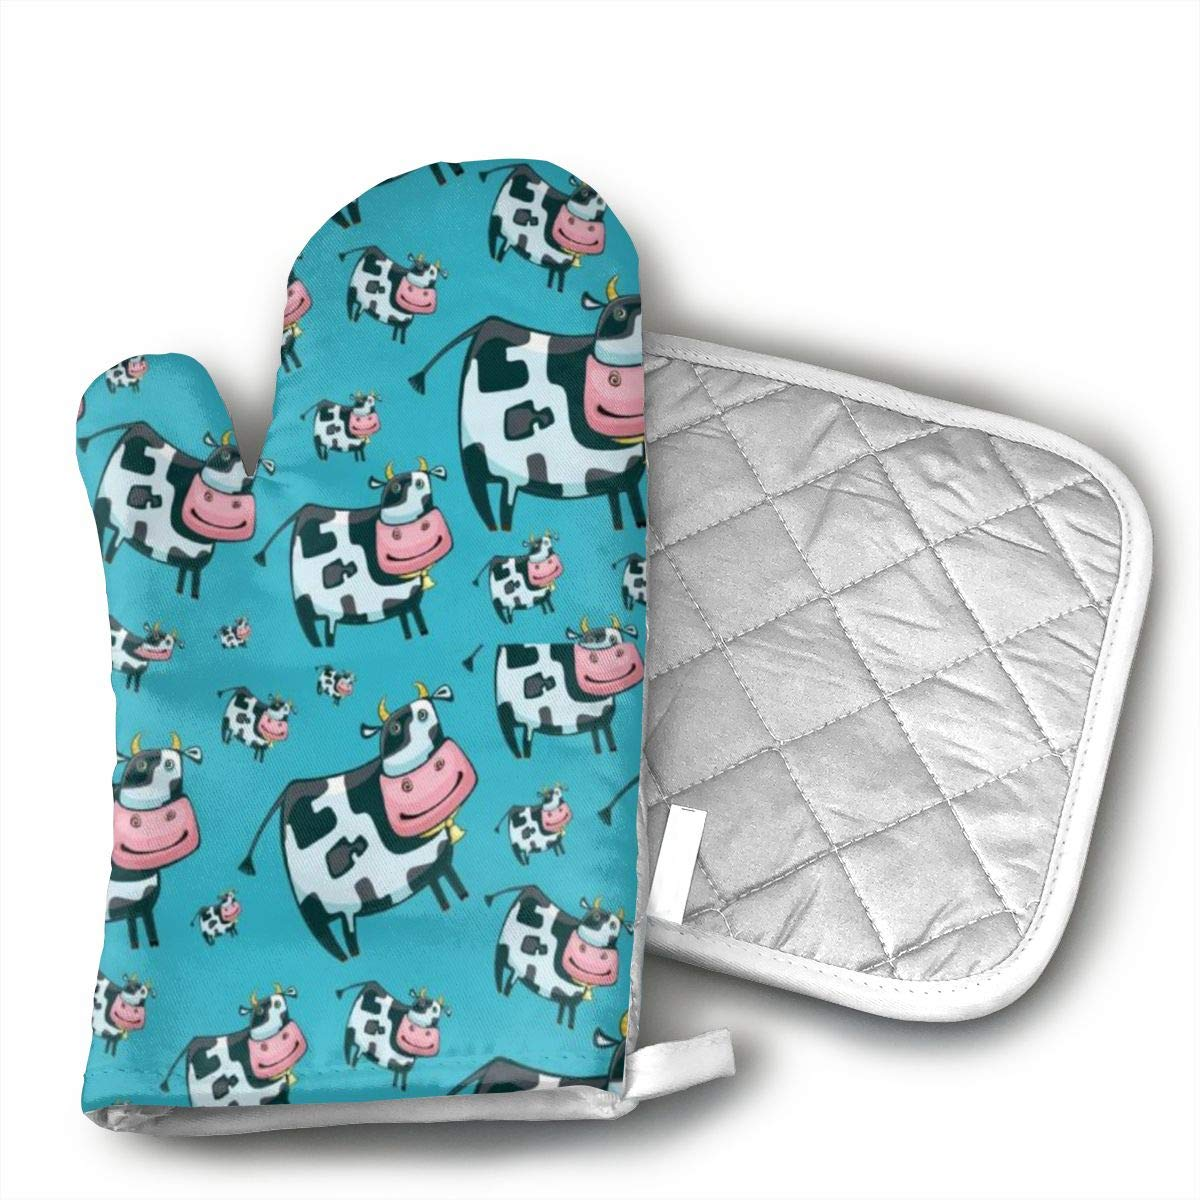 Wiqo9 Cartoon Cow Oven Mitts and Pot Holders Kitchen Mitten Cooking Gloves,Cooking, Baking, BBQ.